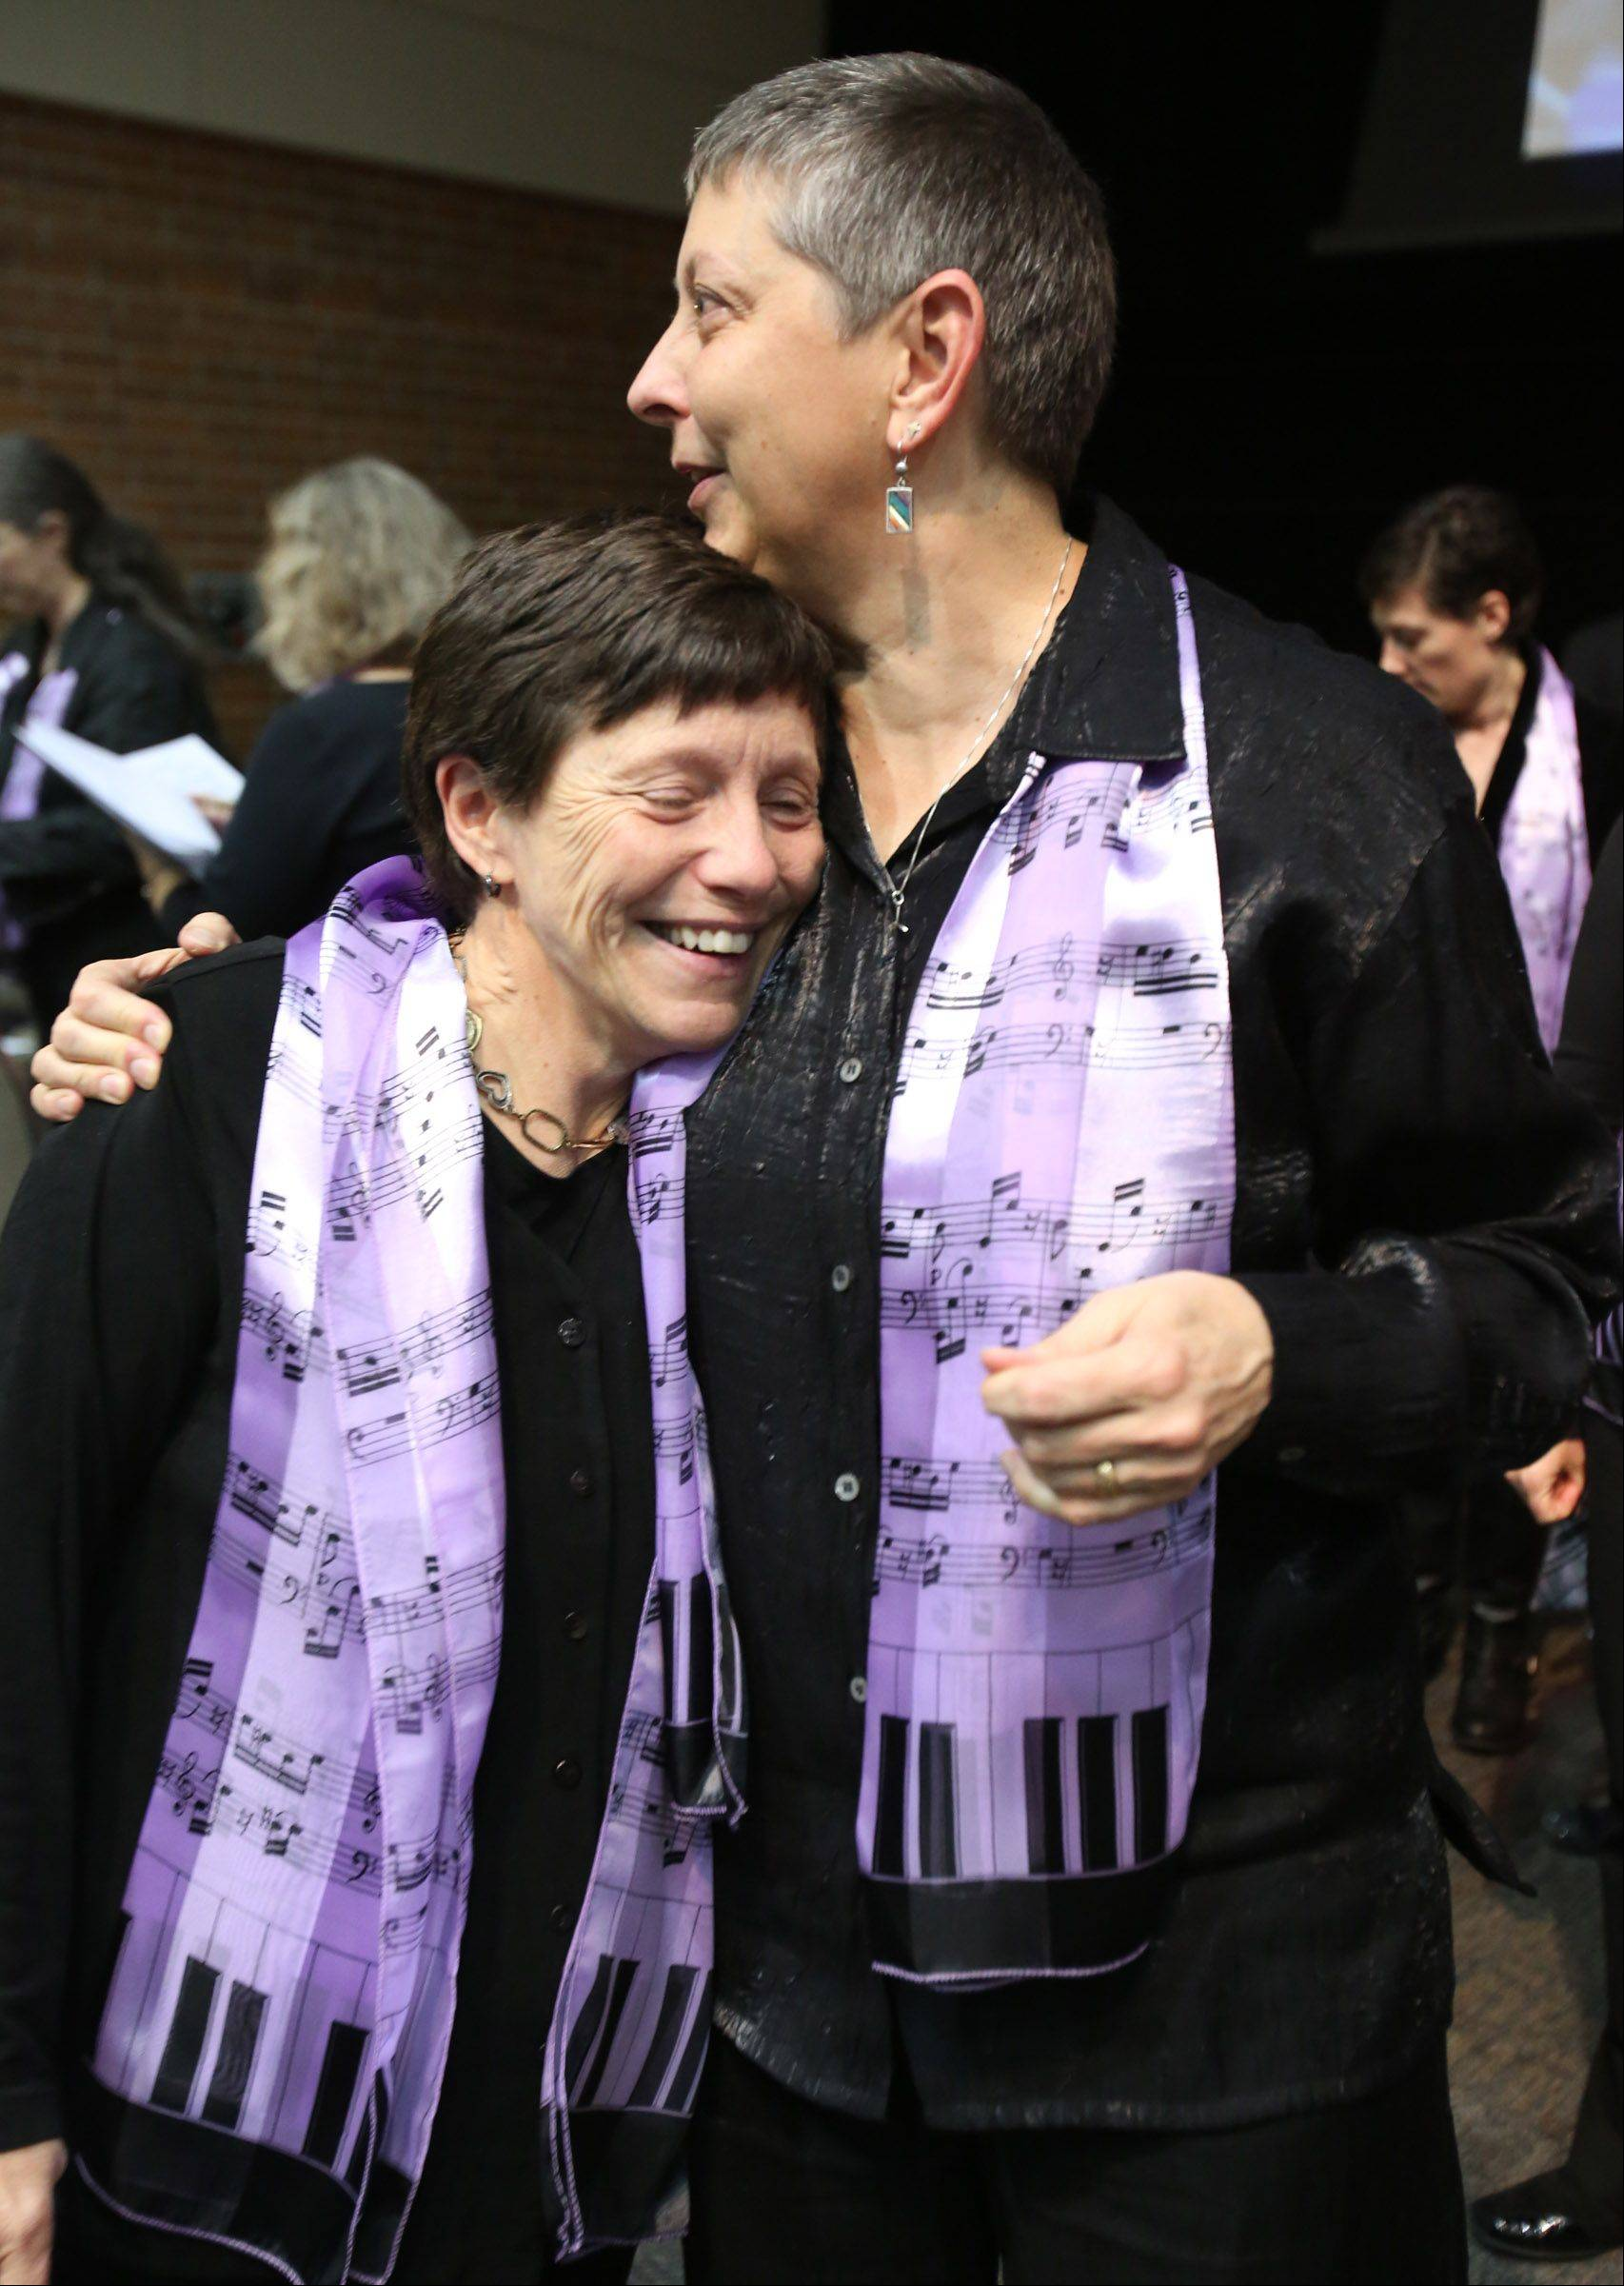 Lou Sutton of Lombard, left, gets a hug from Lois Parr of Chicago. Both sang during the program with Artemis Singers of Chicago, before Gov. Pat Quinn signed the Religious Freedom and Marriage Fairness Act .